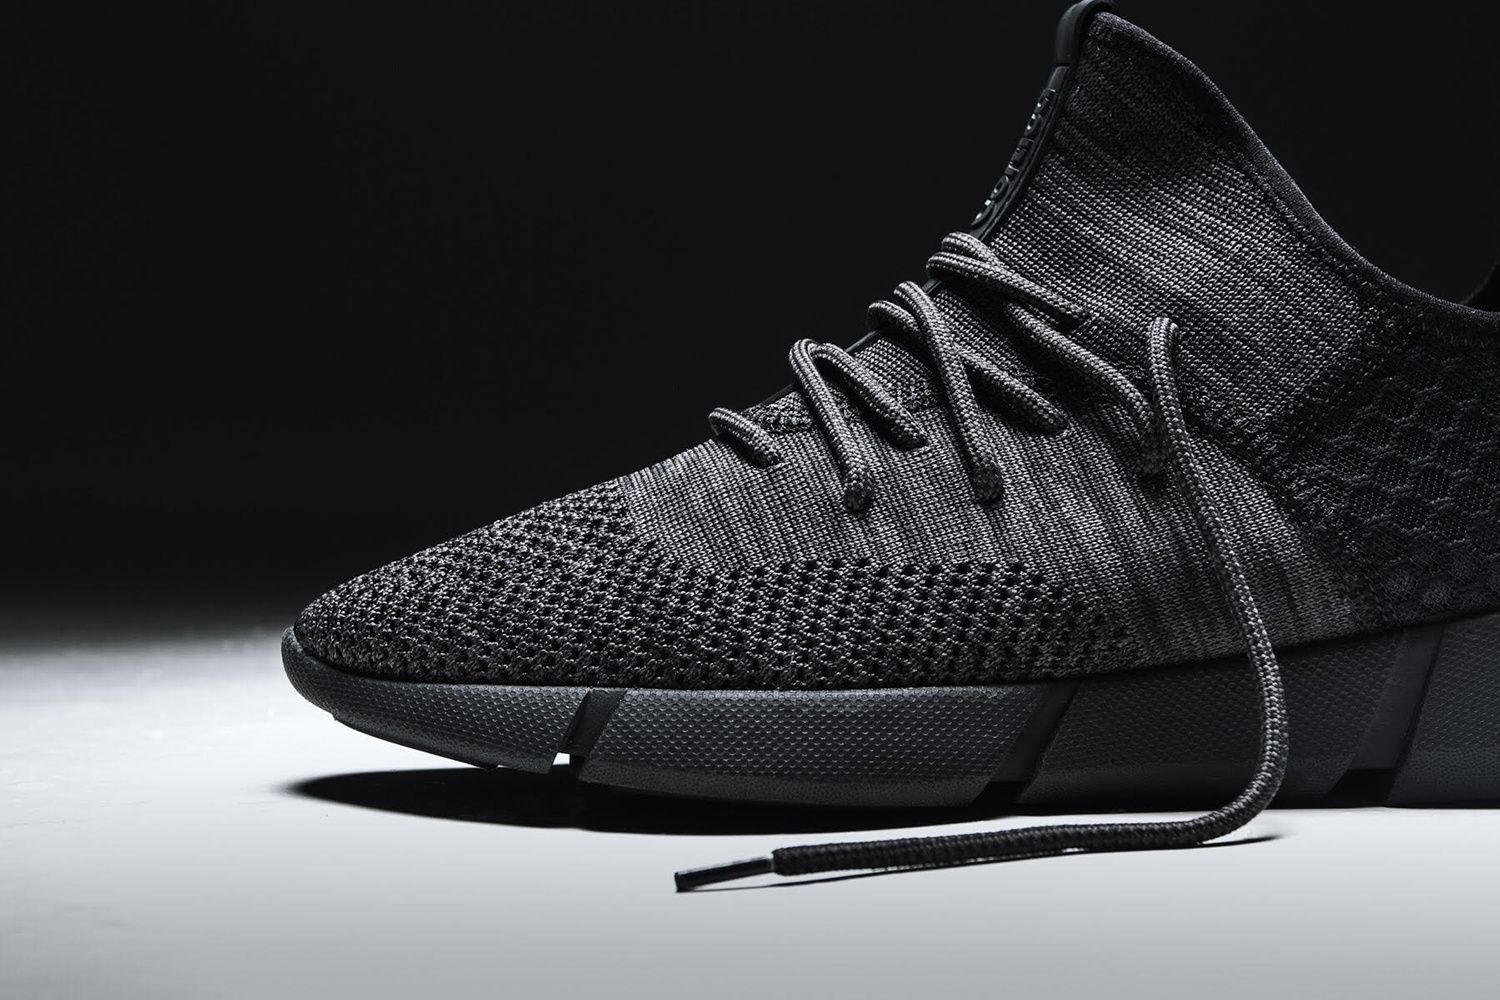 The Cortica Infinity Knit 2.0 Releases in Triple Black  45505cd20b899